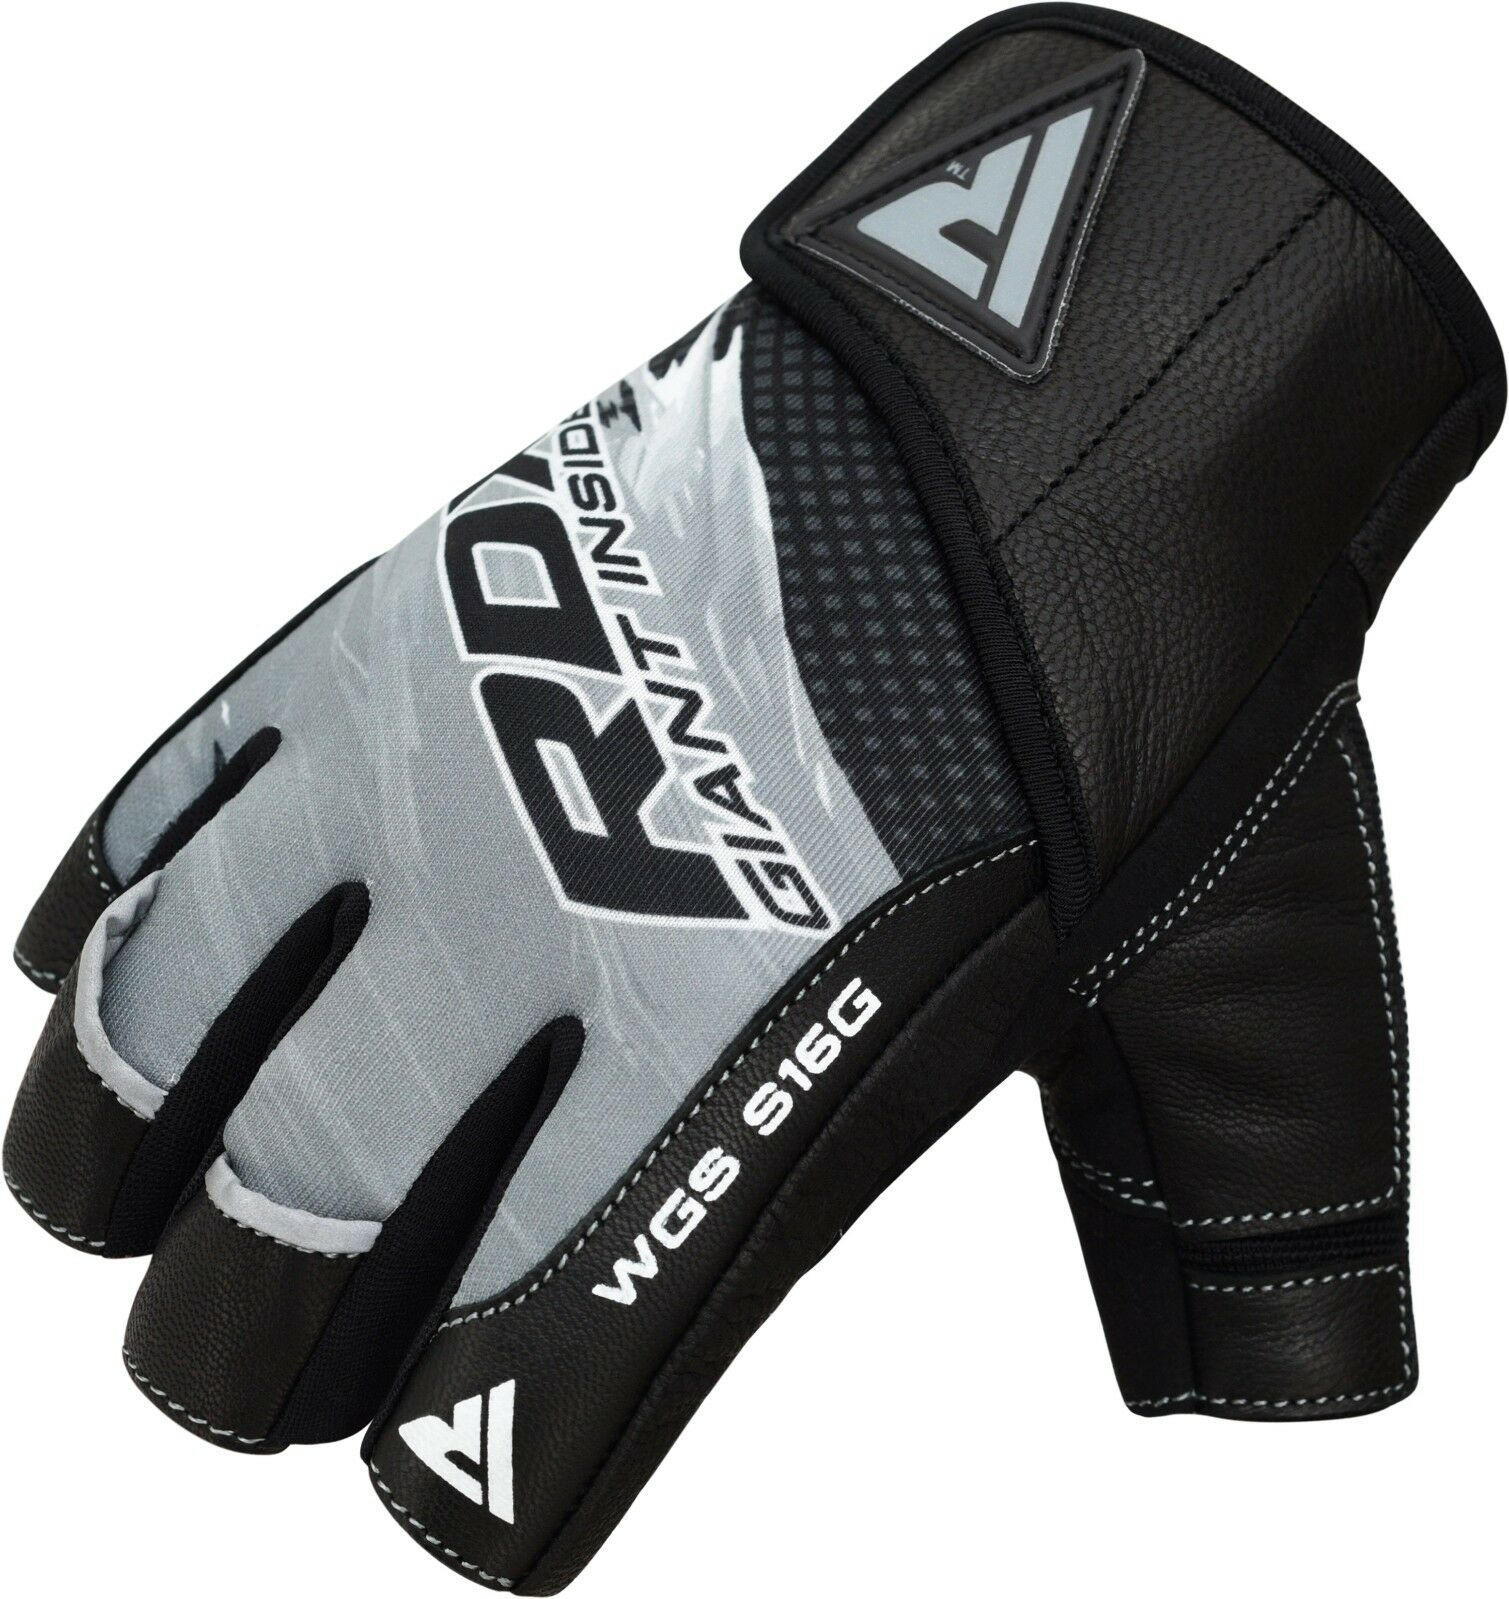 Gym Gloves Weight Lifting Leather Workout Wrist Support: RDX LEATHER WEIGHT Lifting Gym Gloves Training Fitness